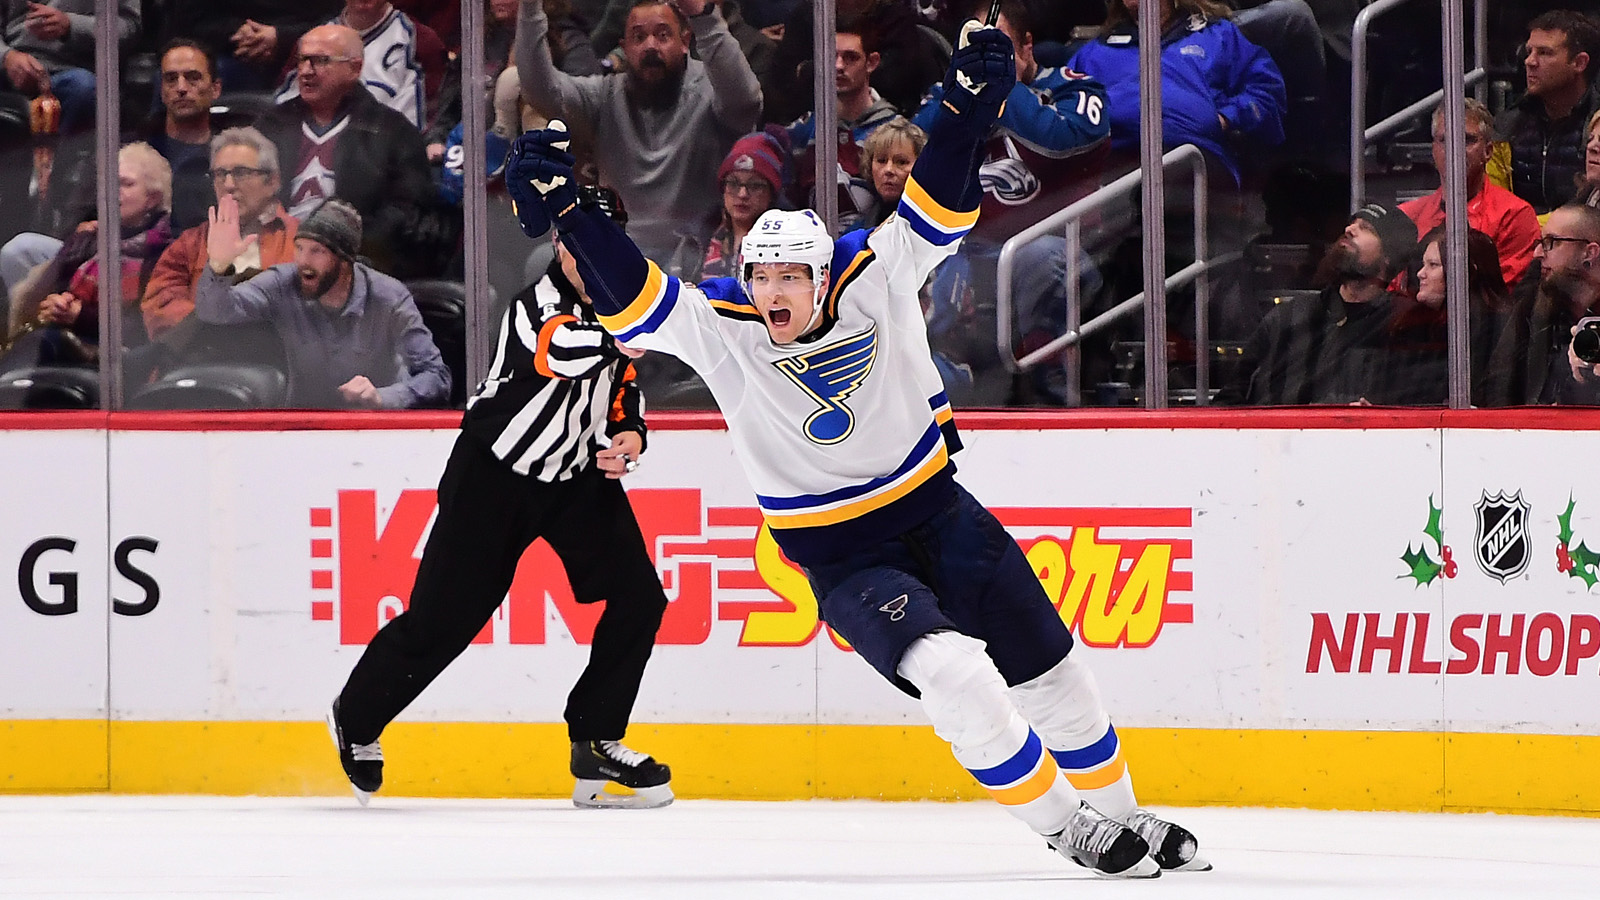 Parayko's goal lifts Blues over Avalanche, 3-2 in overtime